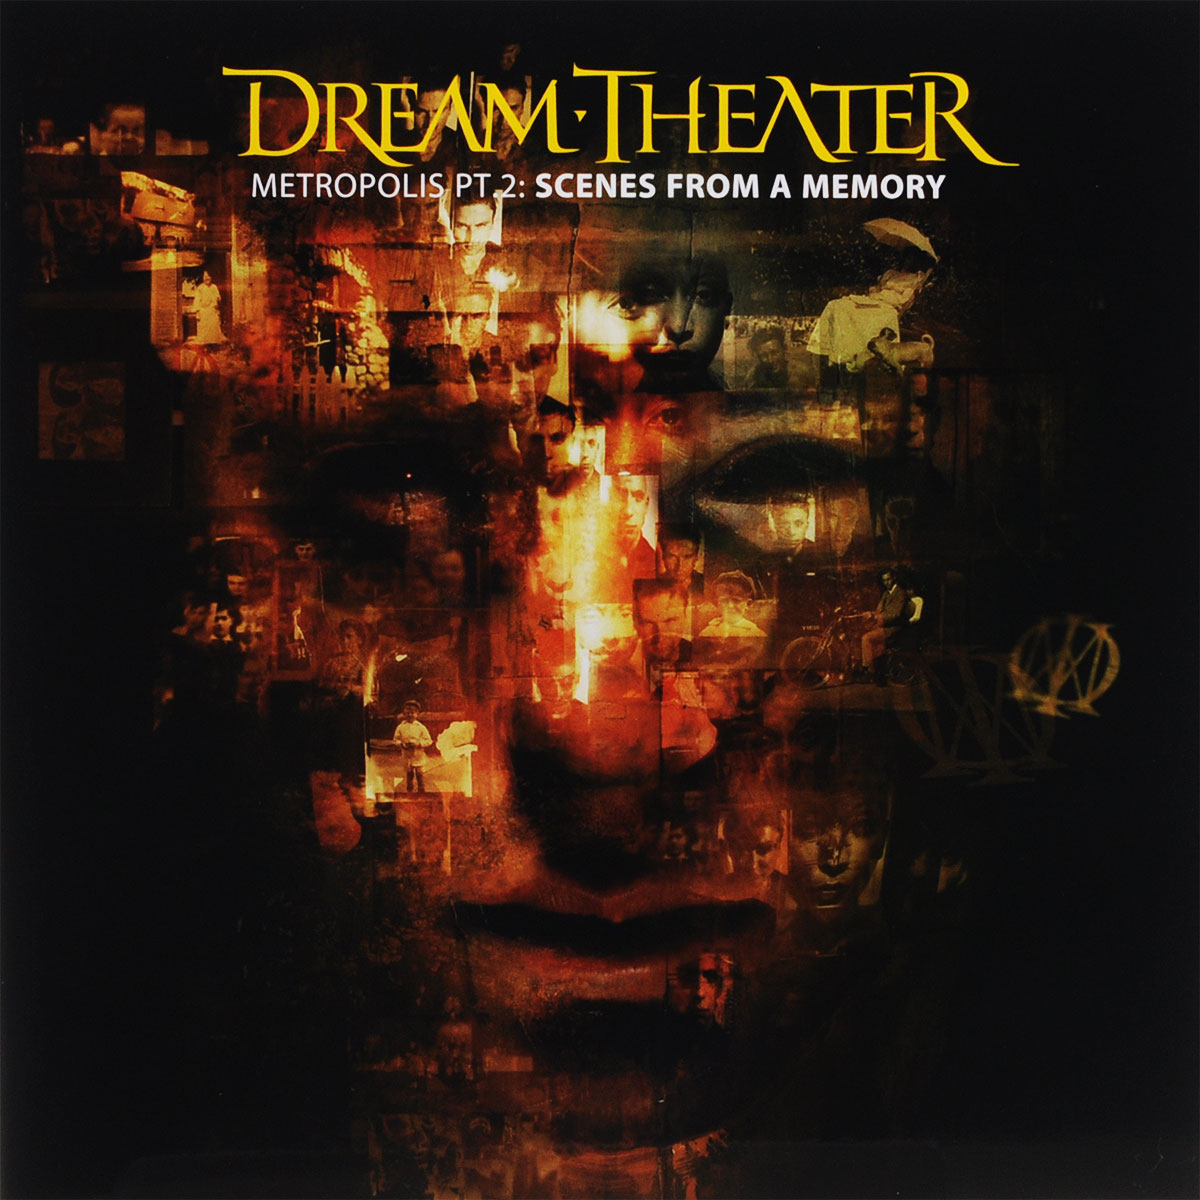 Dream Theater DREAM THEATER Metropolis Part 2:.. -Hq- 2LP dream theater dream theater train of thought lp